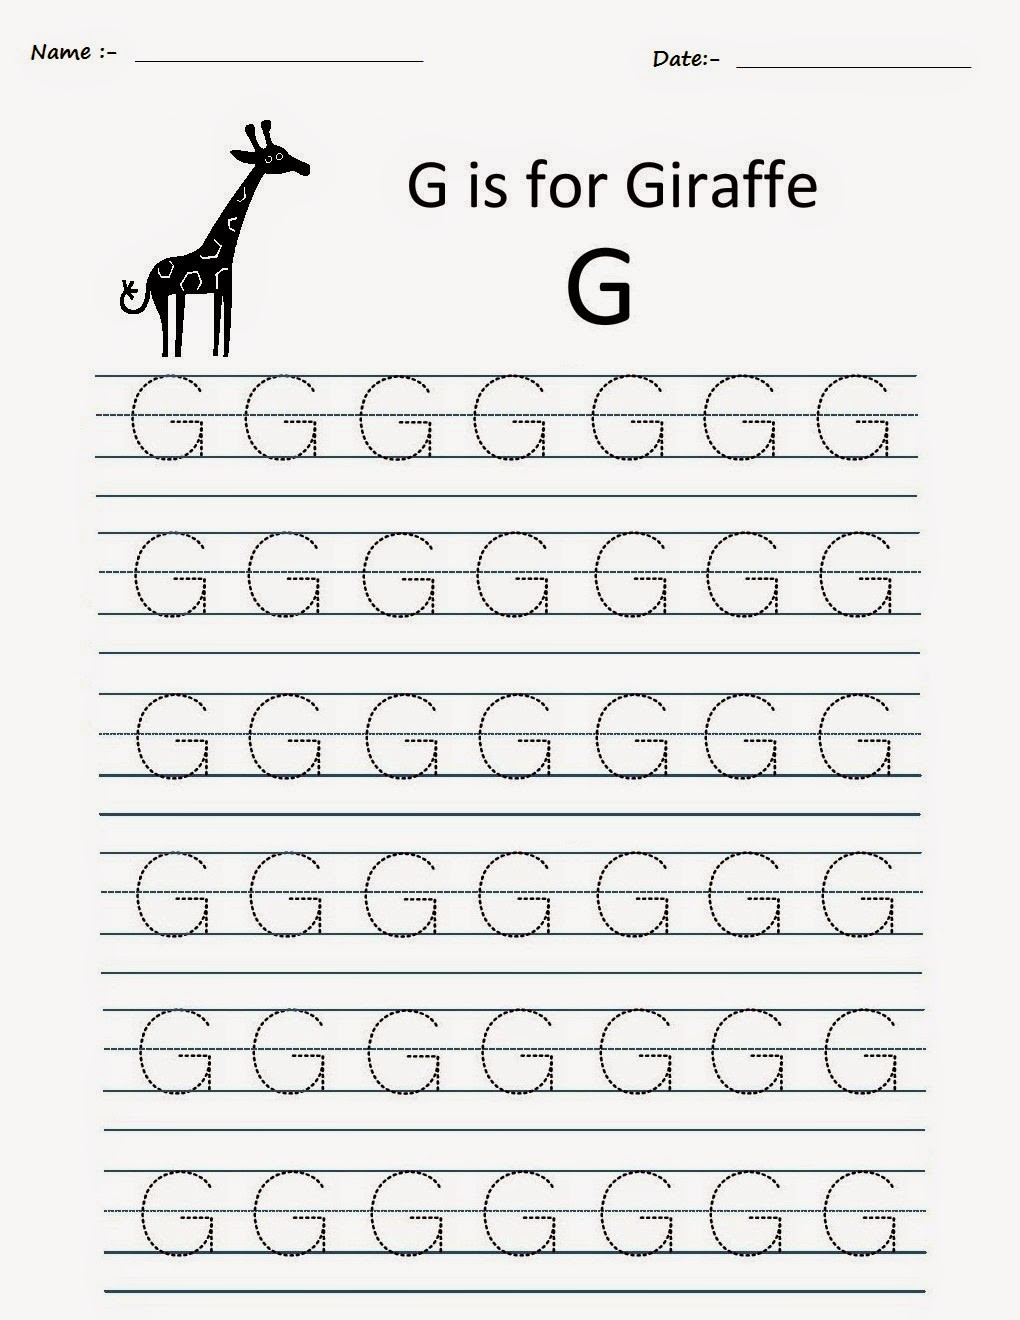 G Worksheets for Preschool Kindergarten Worksheets Printable Tracing Worksheets